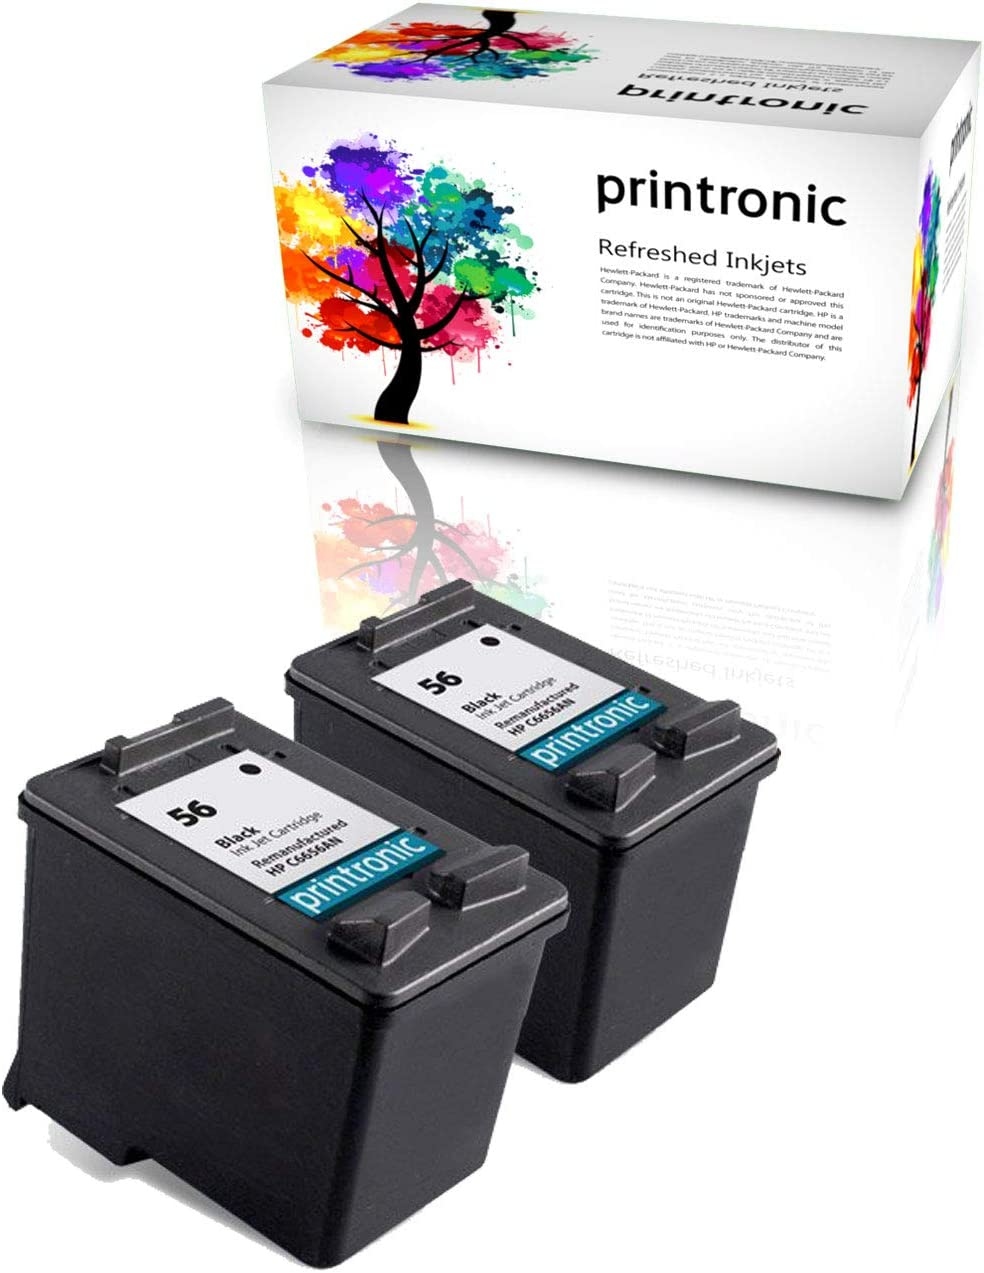 Printronic Remanufactured Ink Cartridge Replacement 2 Pack for HP 56 for Deskjet 5850 9650 OfficeJet 4110 5505 PhotoSmart 7150 7550 PSC 1317 1205 2100 2510 (2 Black)